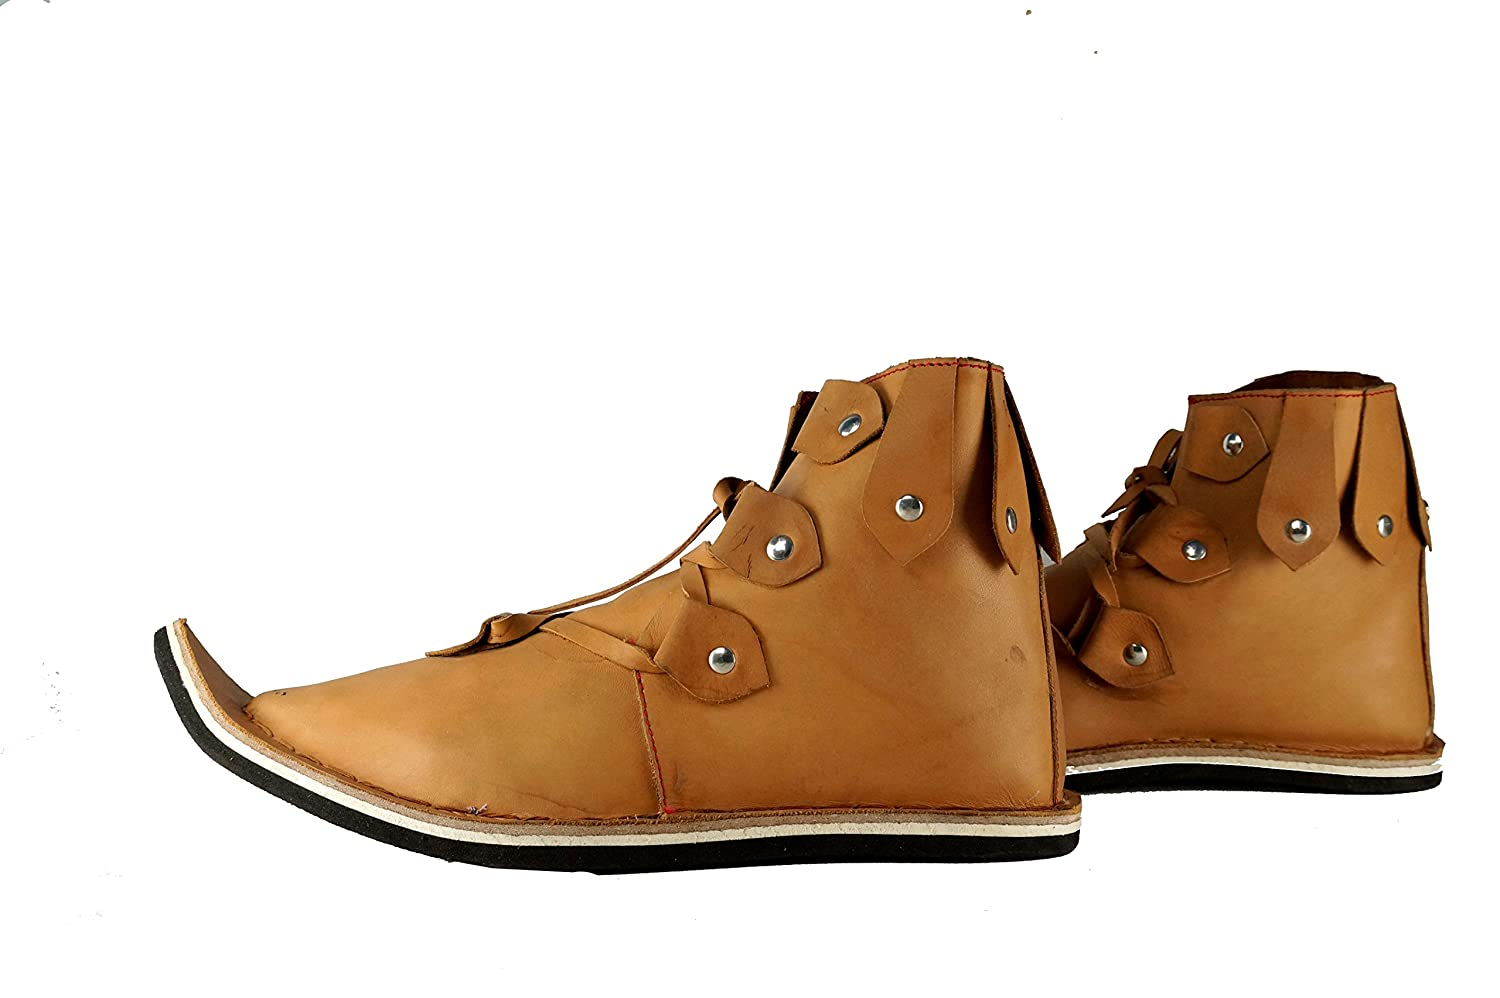 a7a522dcfc514 Medieval and Renaissance Men's Costume Boots & Shoes | Deluxe ...